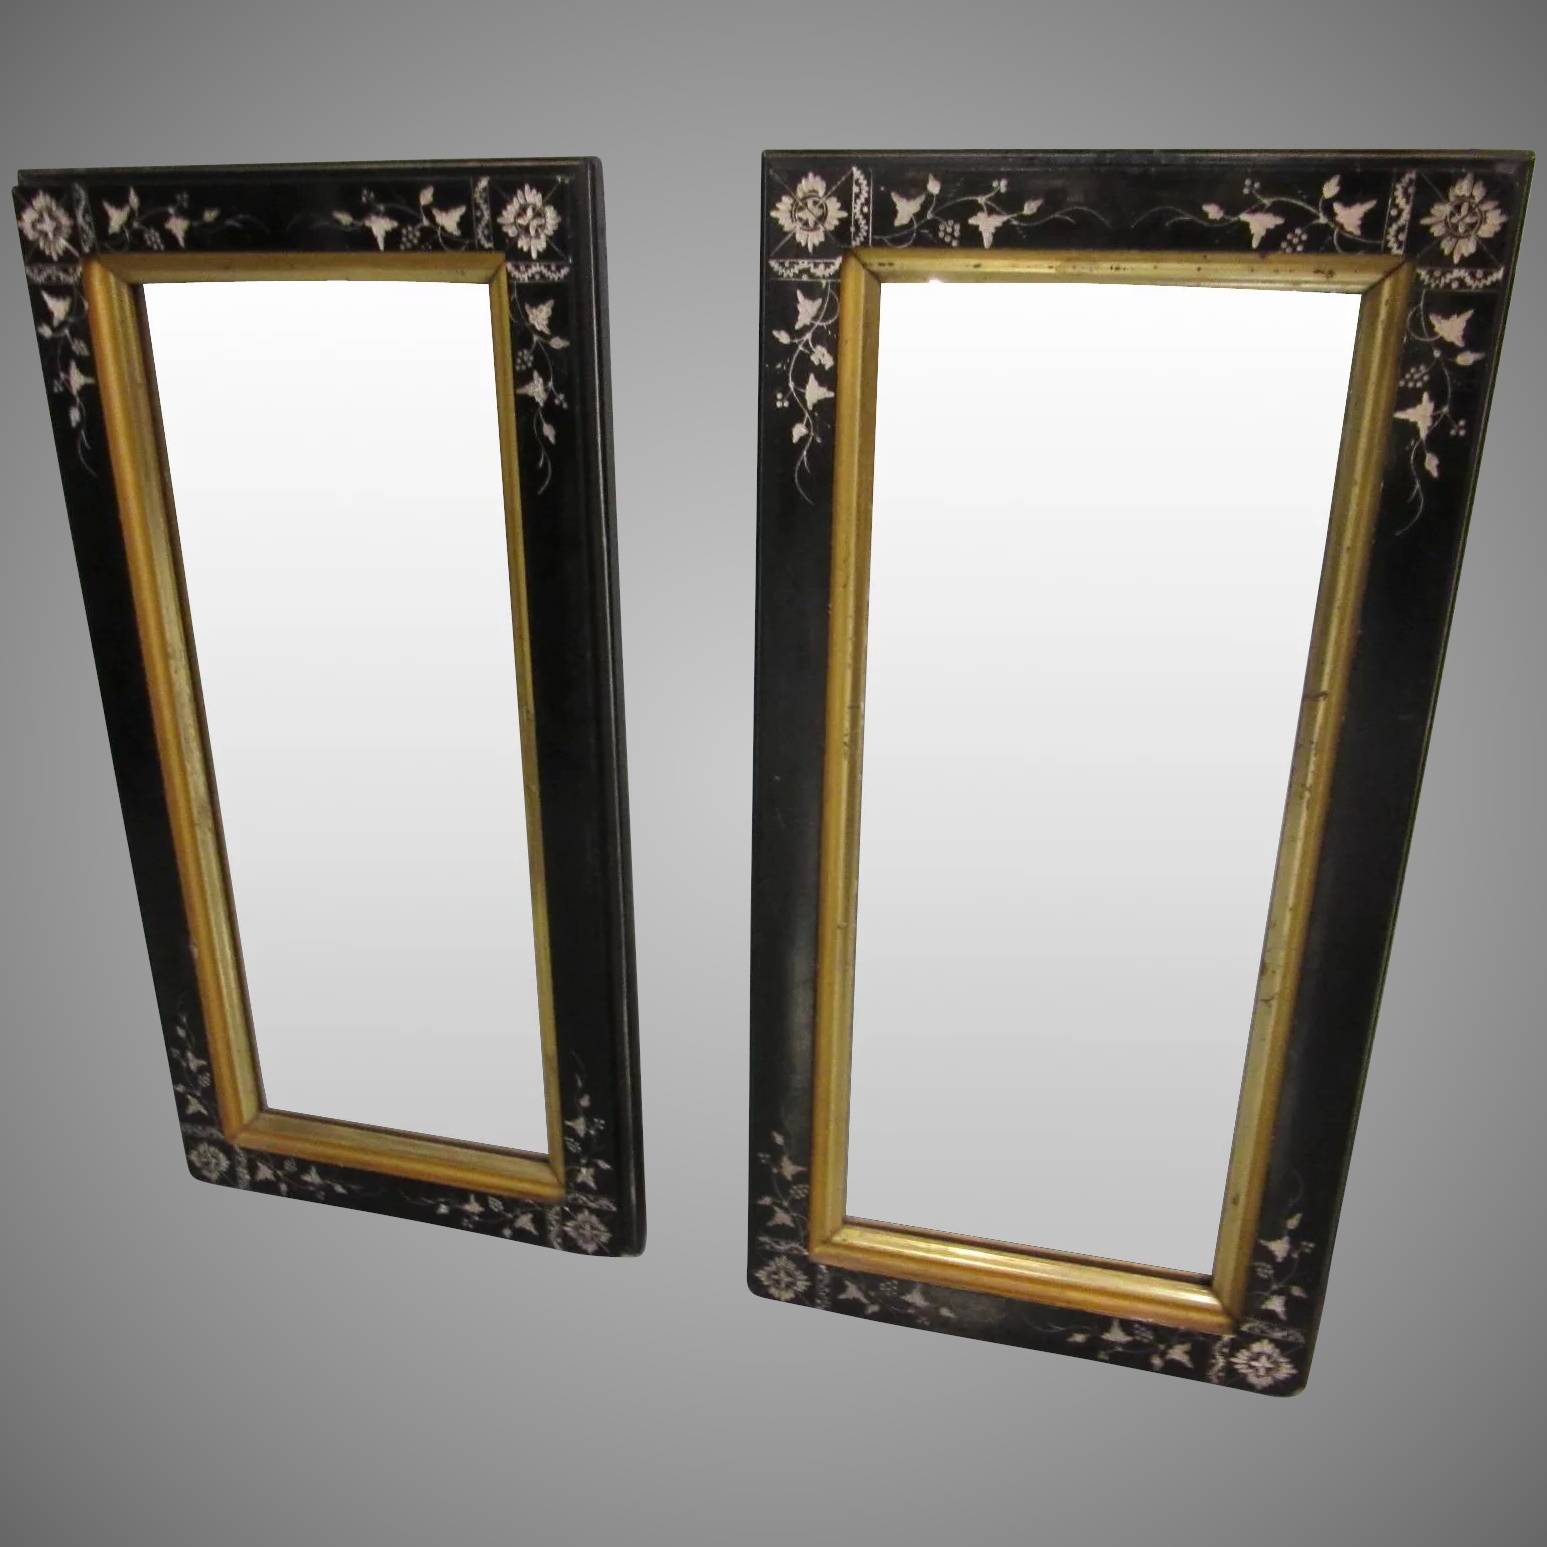 2020 Pair Eastlake Black Carved Lacquer With Gold Framed Wall Mirrors In Black And Gold Wall Mirrors (View 14 of 20)